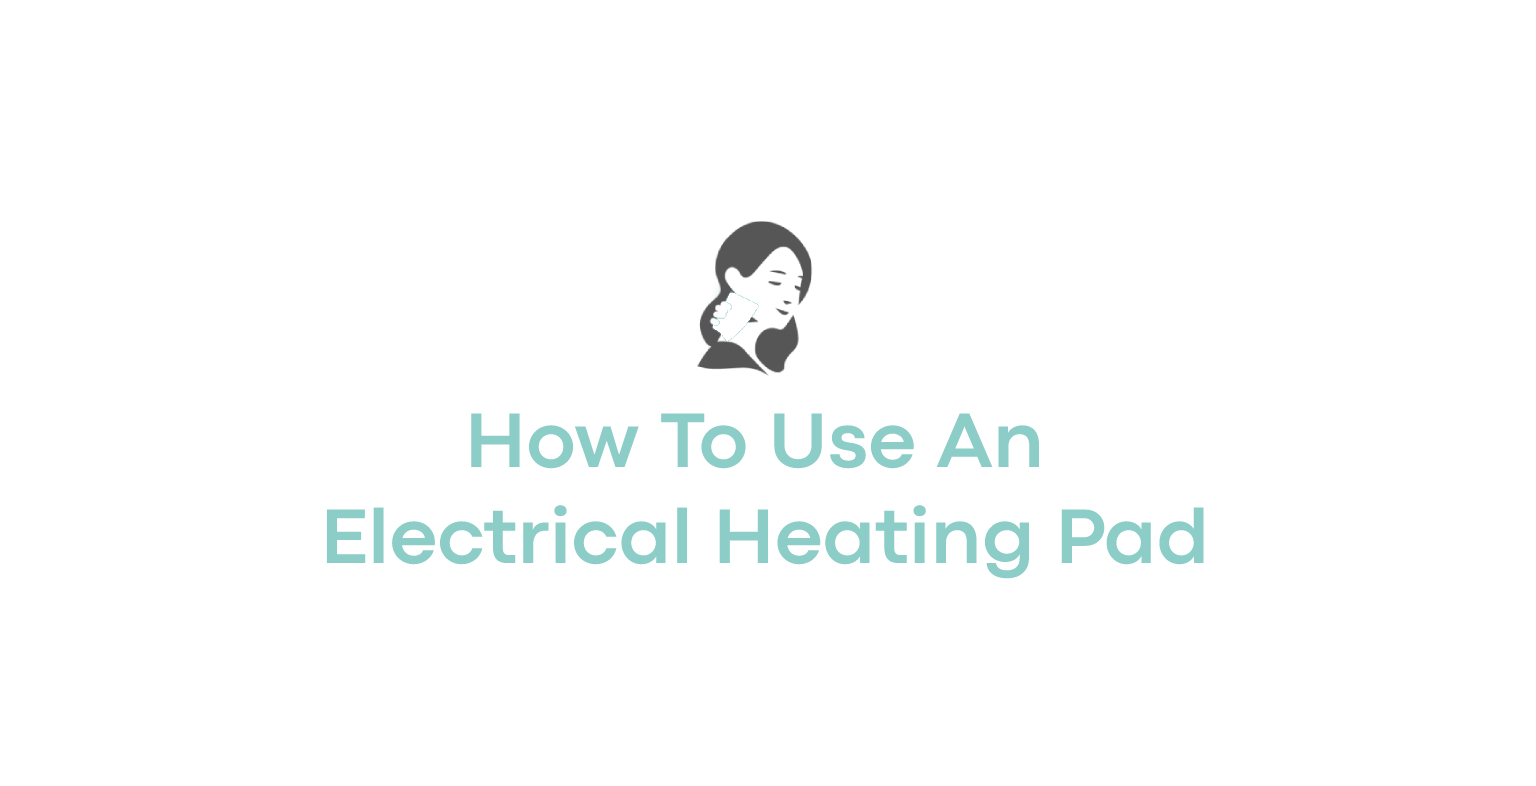 How To Use An Electrical Heating Pad